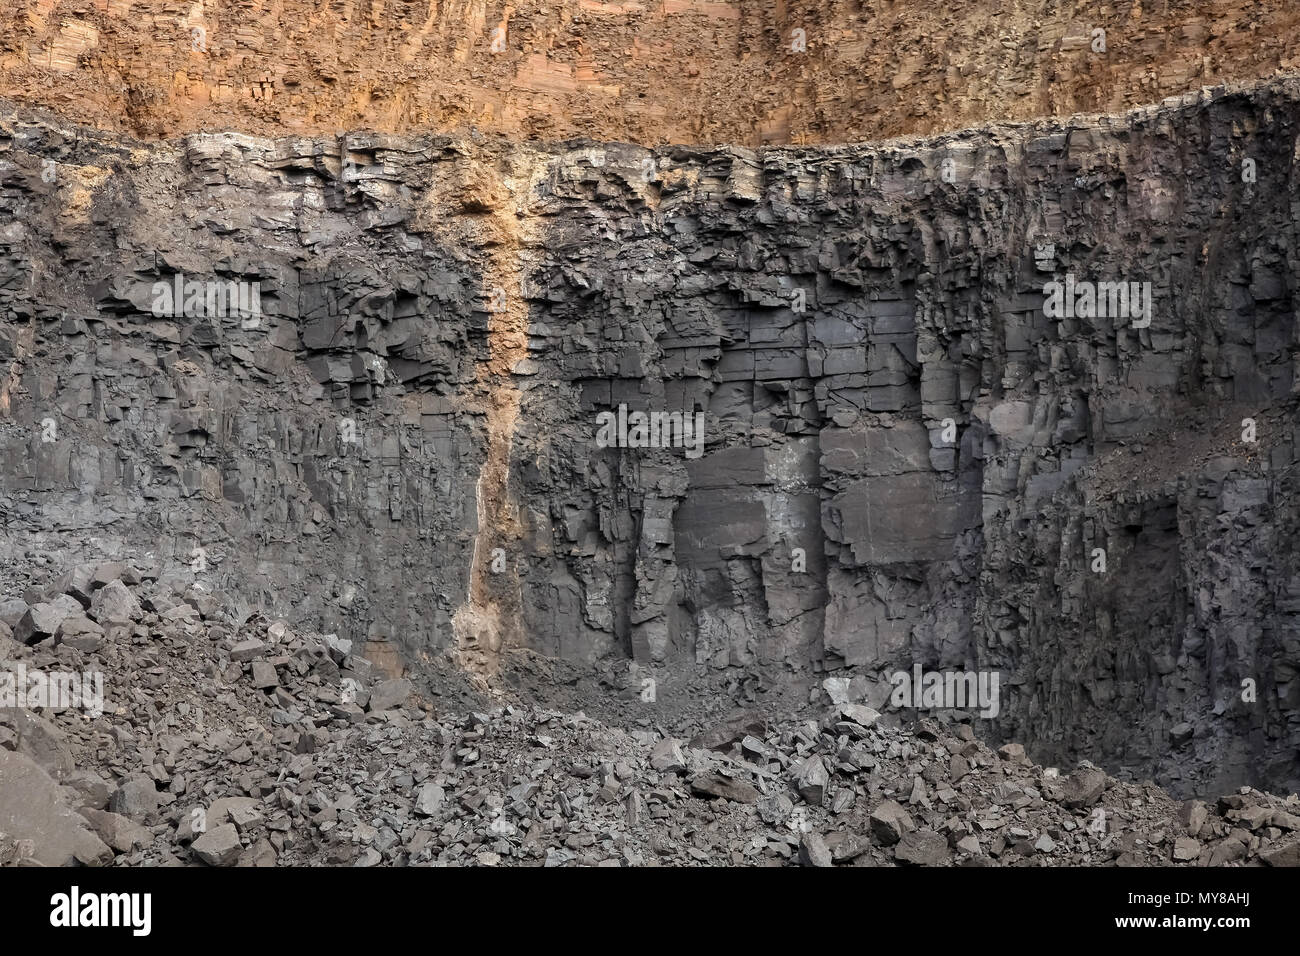 Open pit Manganese Mining, Sedimentary rock layers showing drill holes and deposits - Stock Image